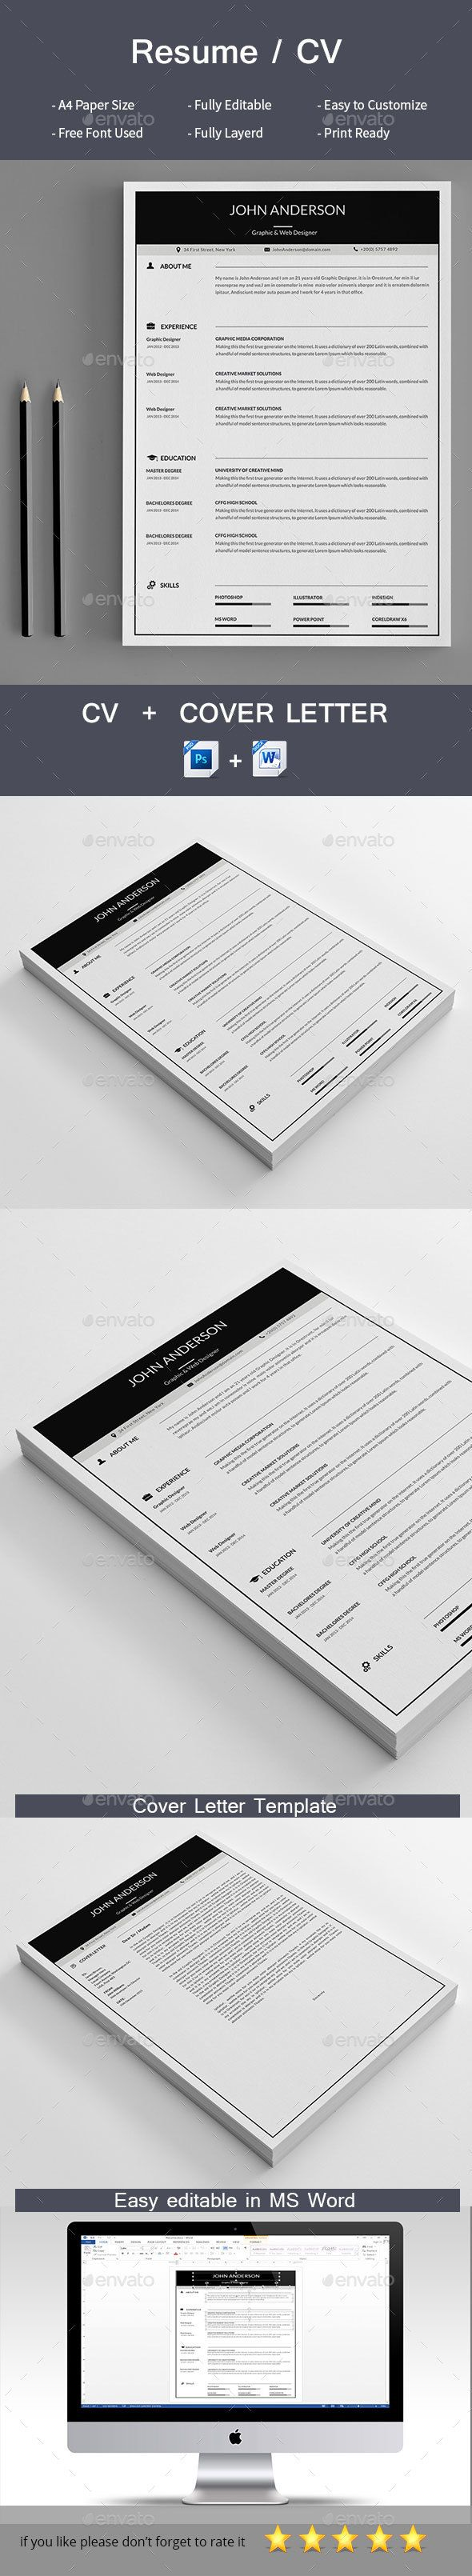 Cv | Resume cover letter template, Resume cover letters and Cover ...